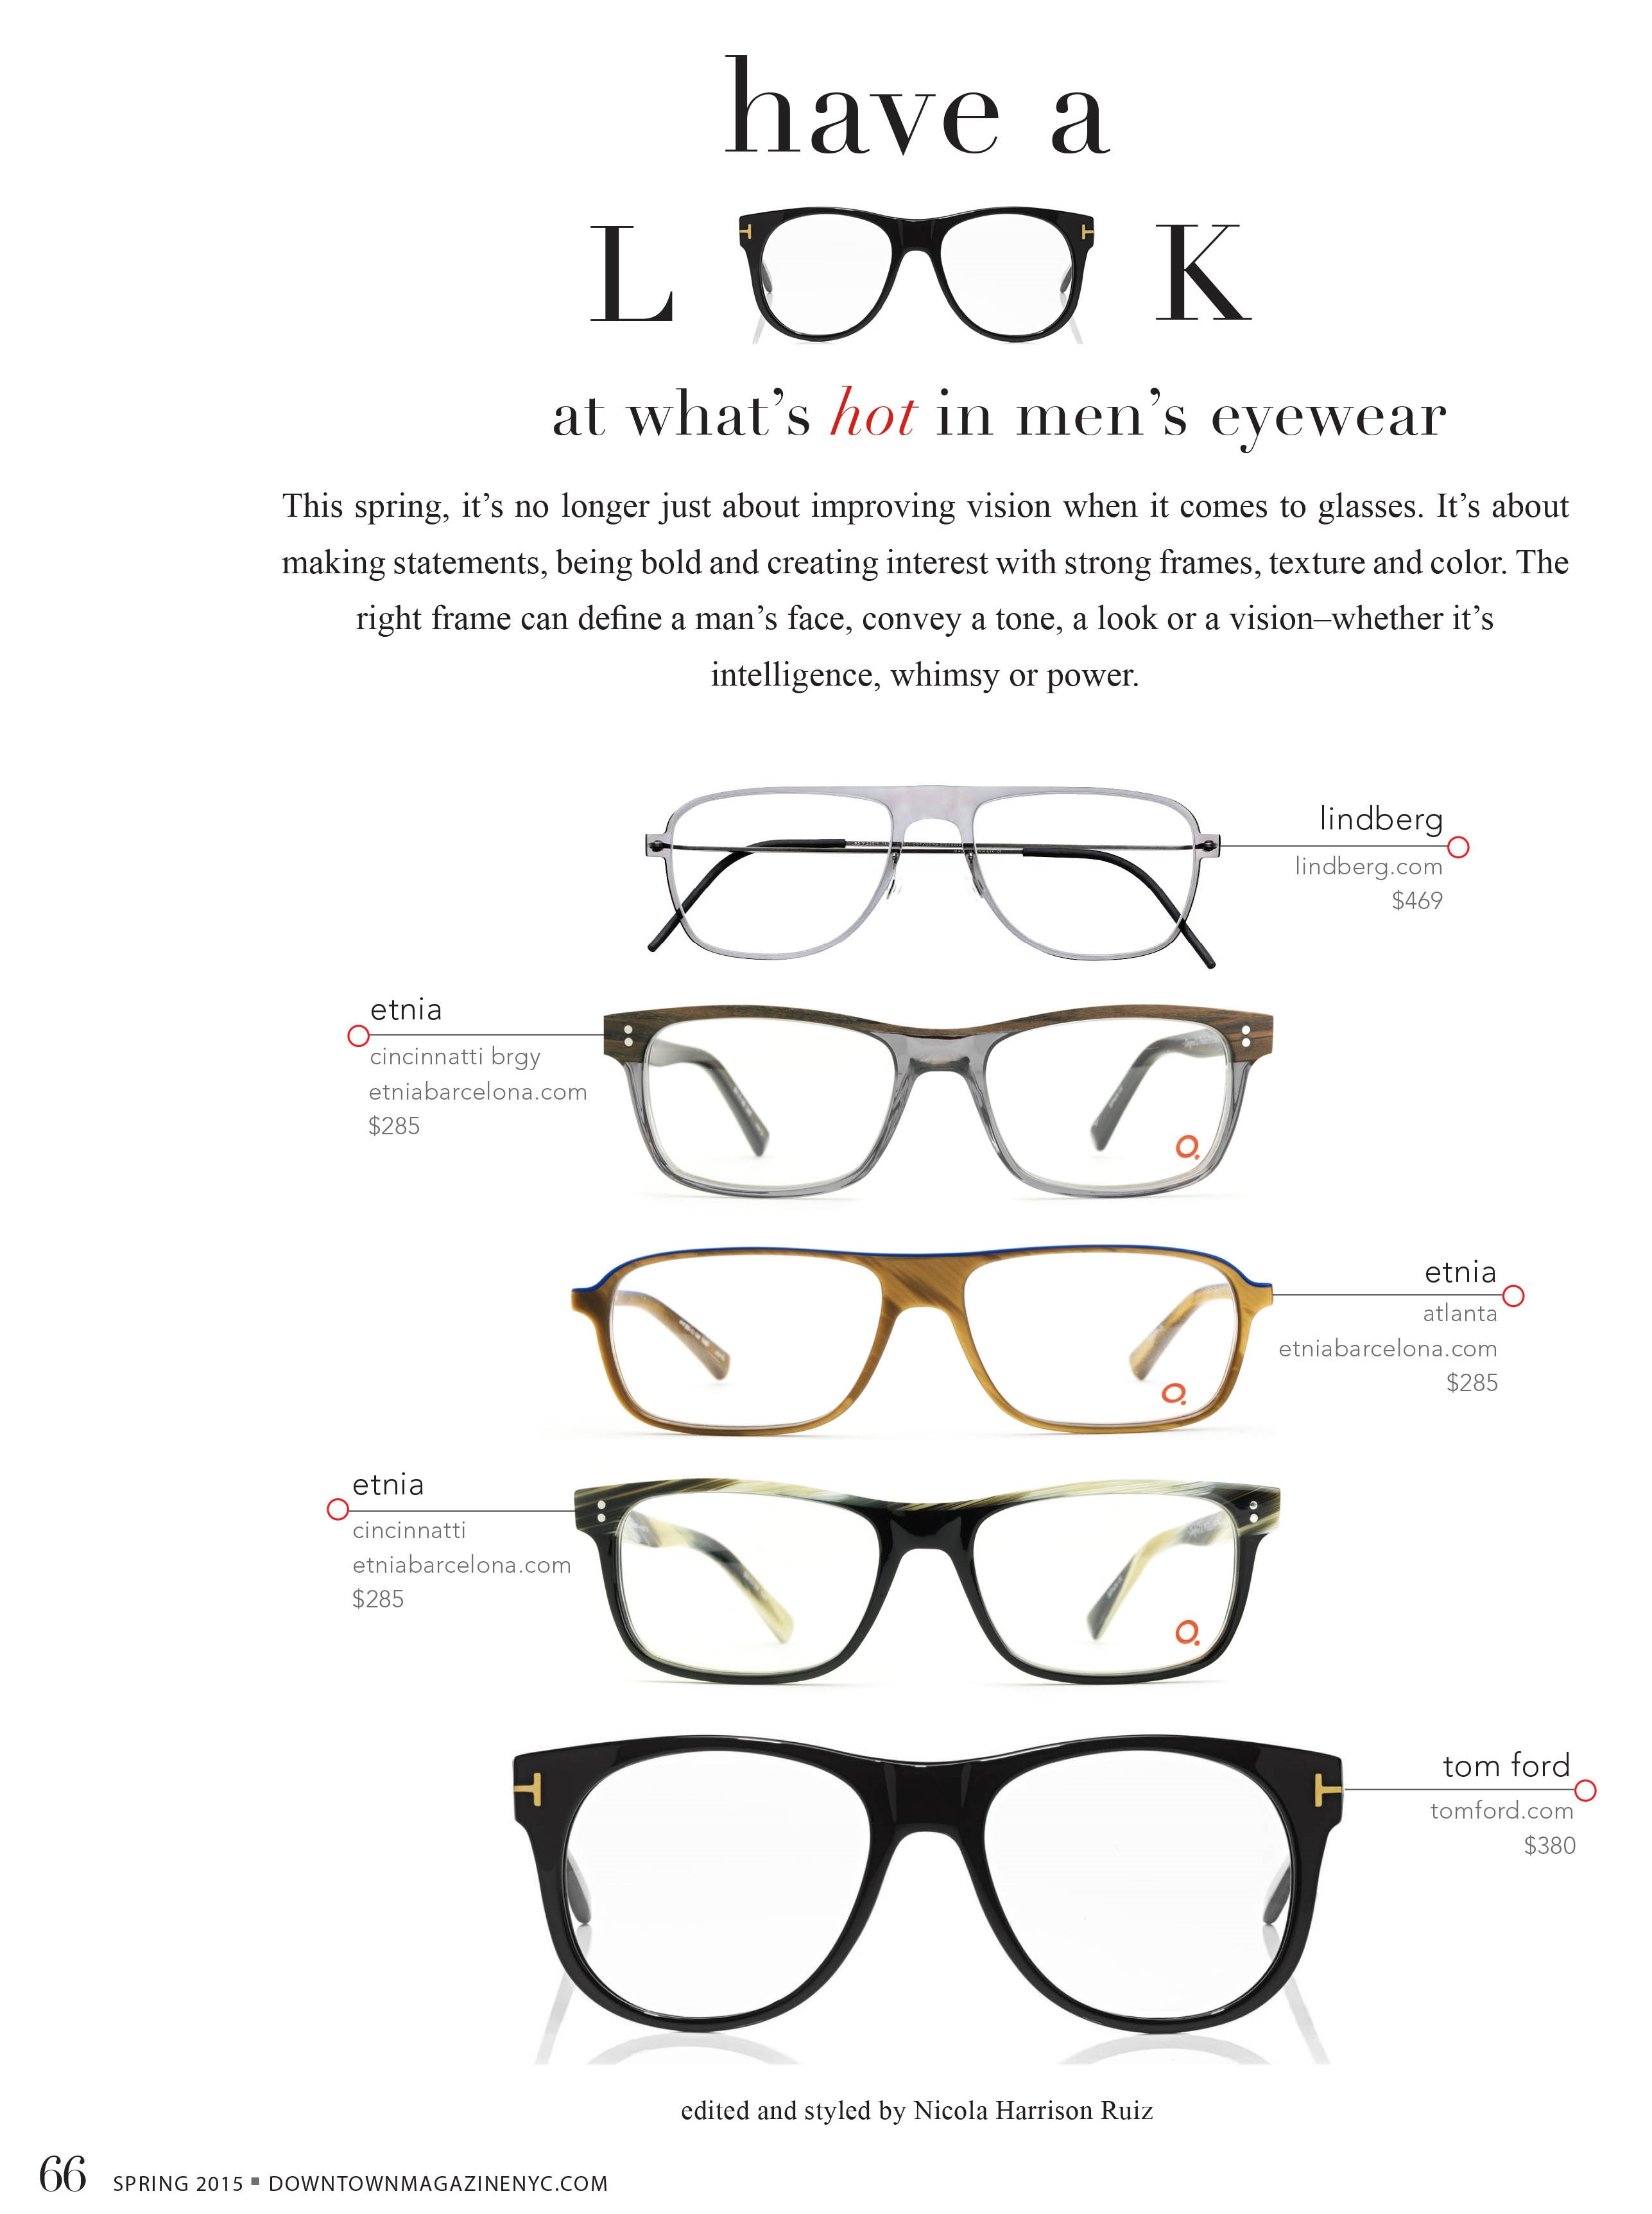 Have a look at Downtown Magazine and LINDBERG